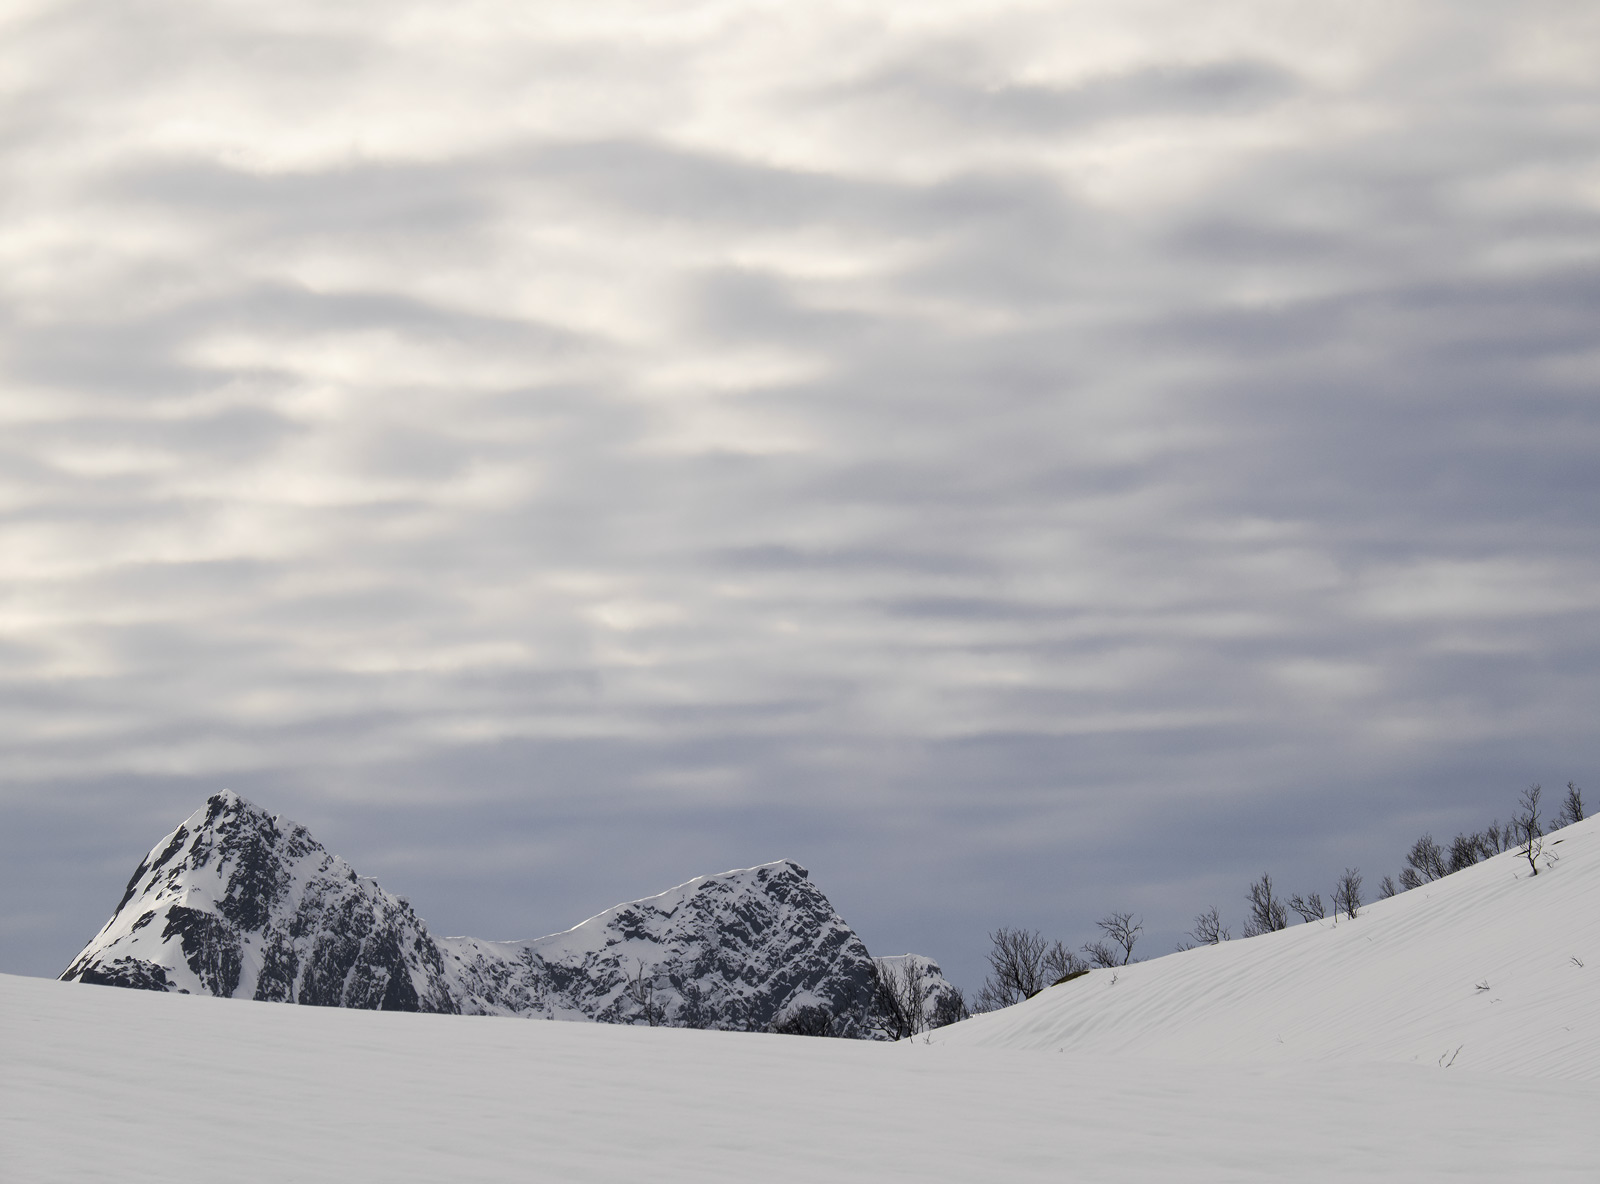 The Cats Back, Bergsbotn, Senja, Norway, distant, mountains, brush, trees, snow, concealed, fur, ears, cloudy, layered, , photo